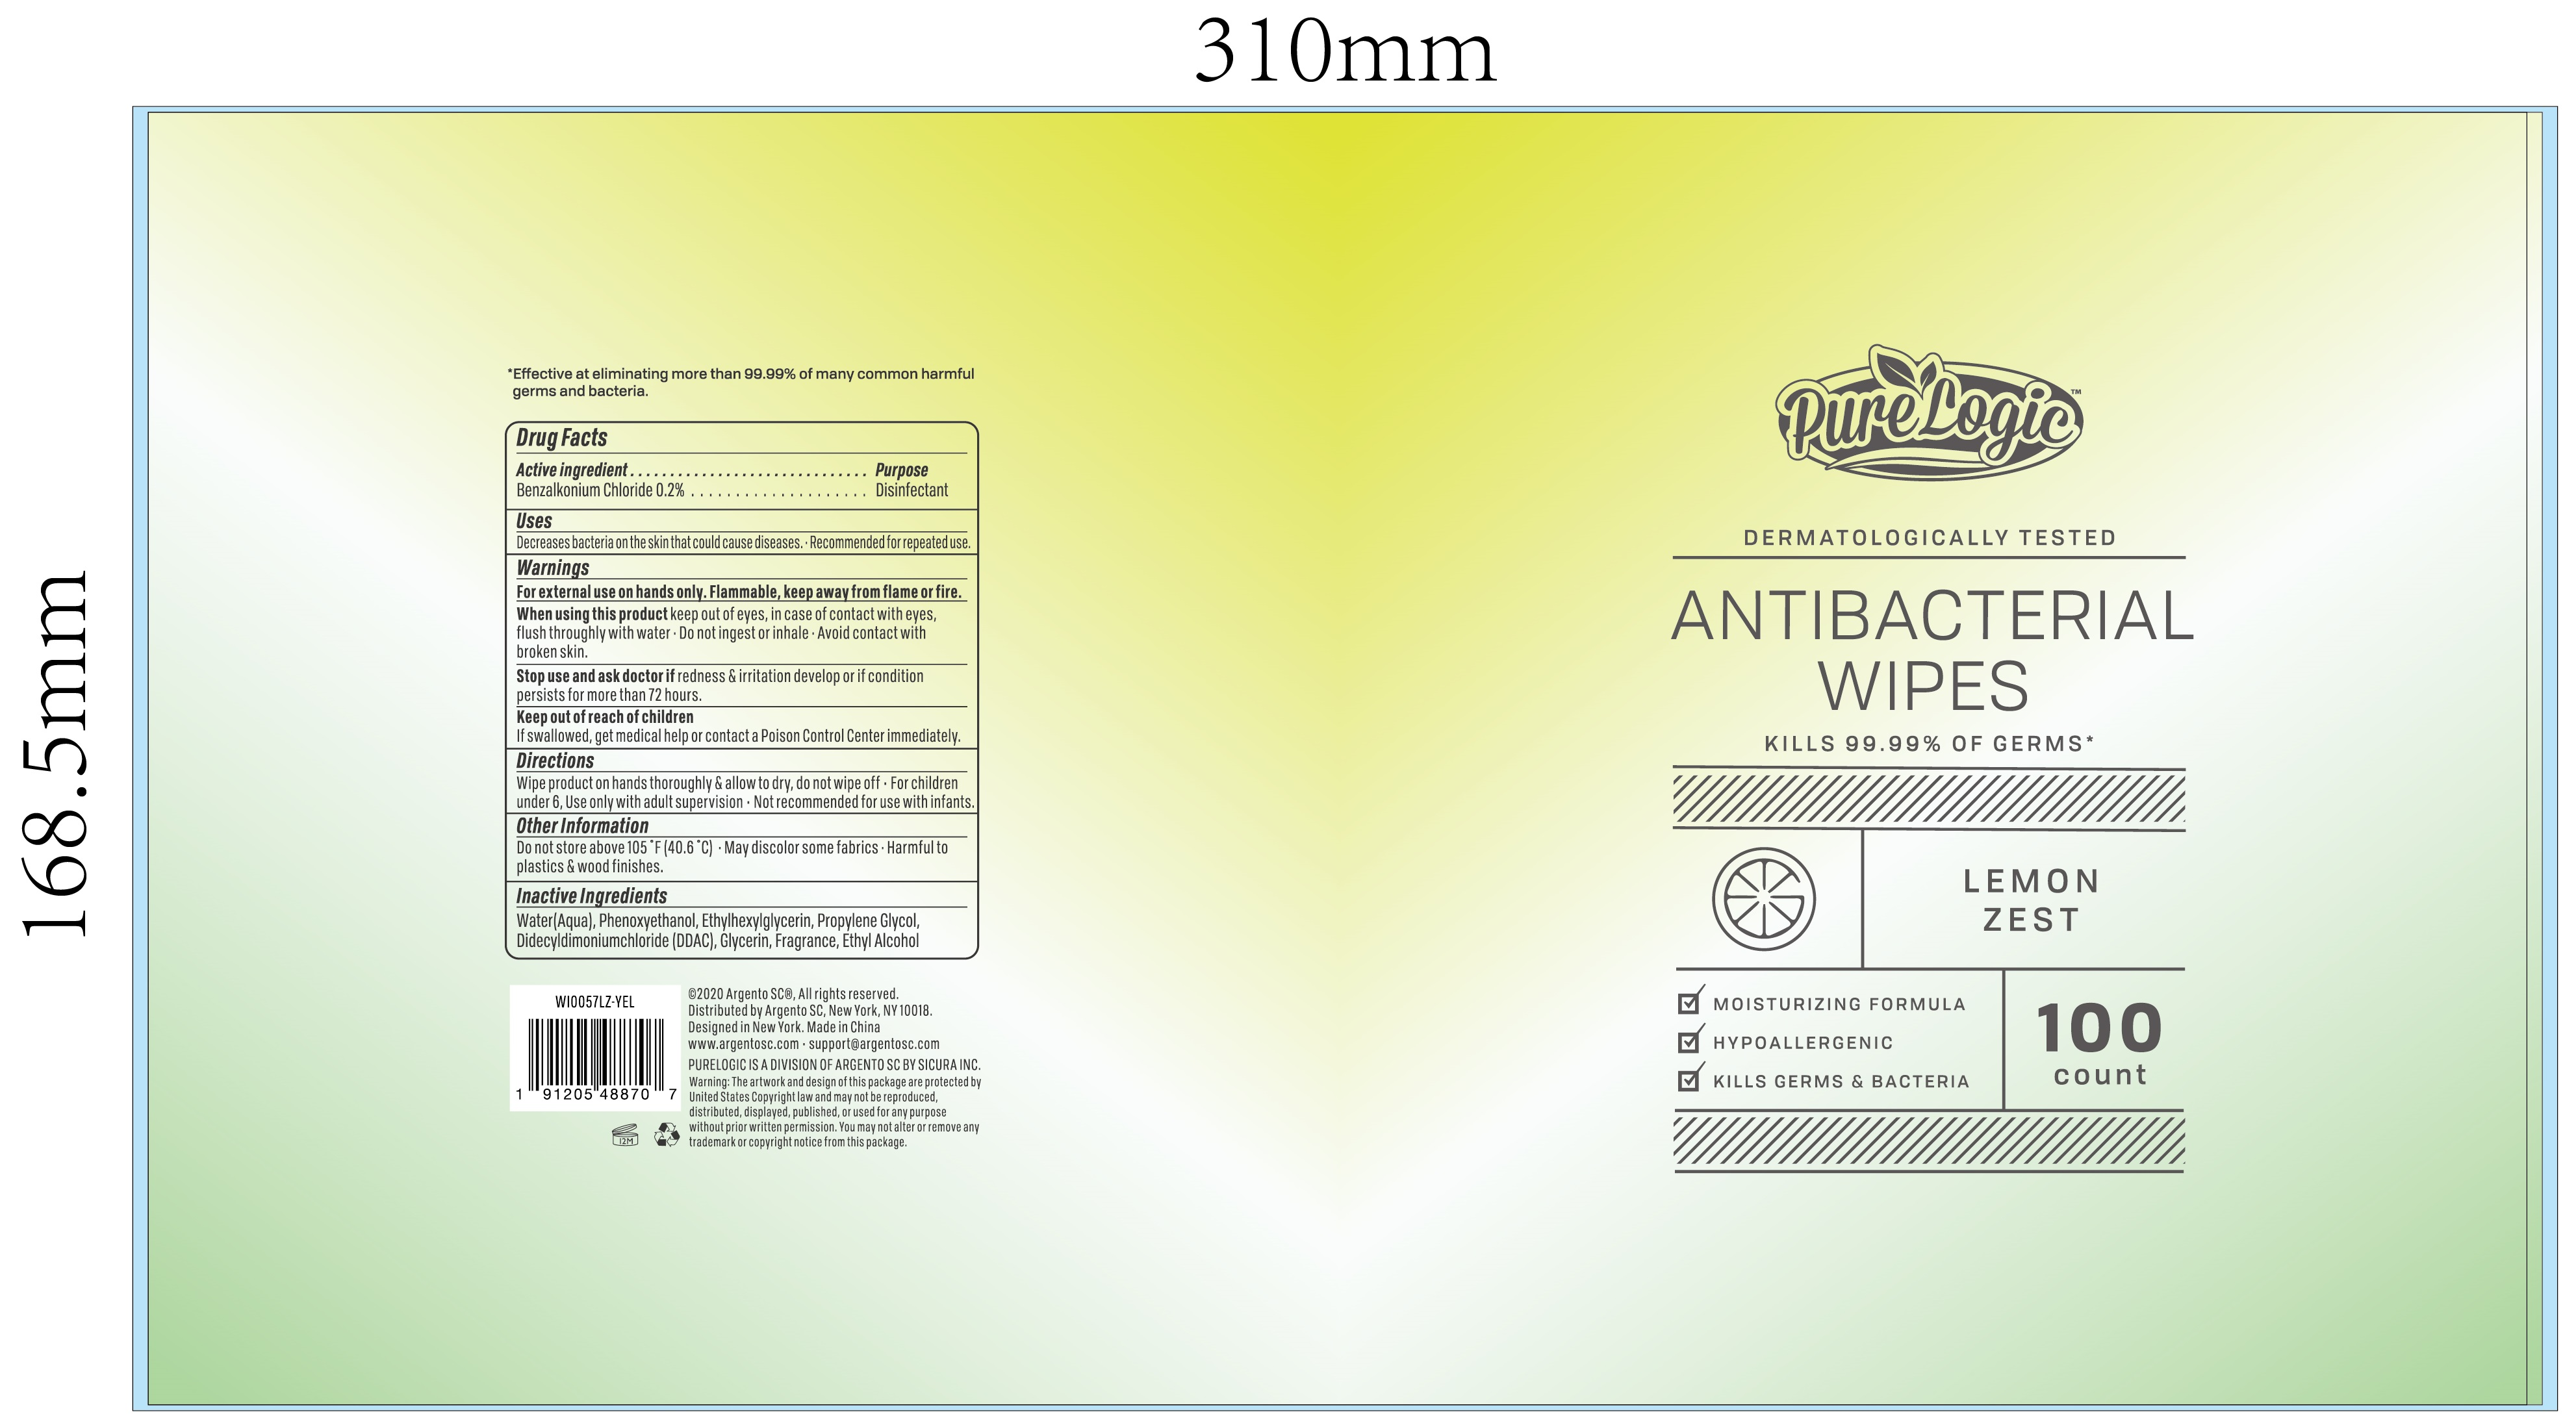 100 CLOTH LABEL